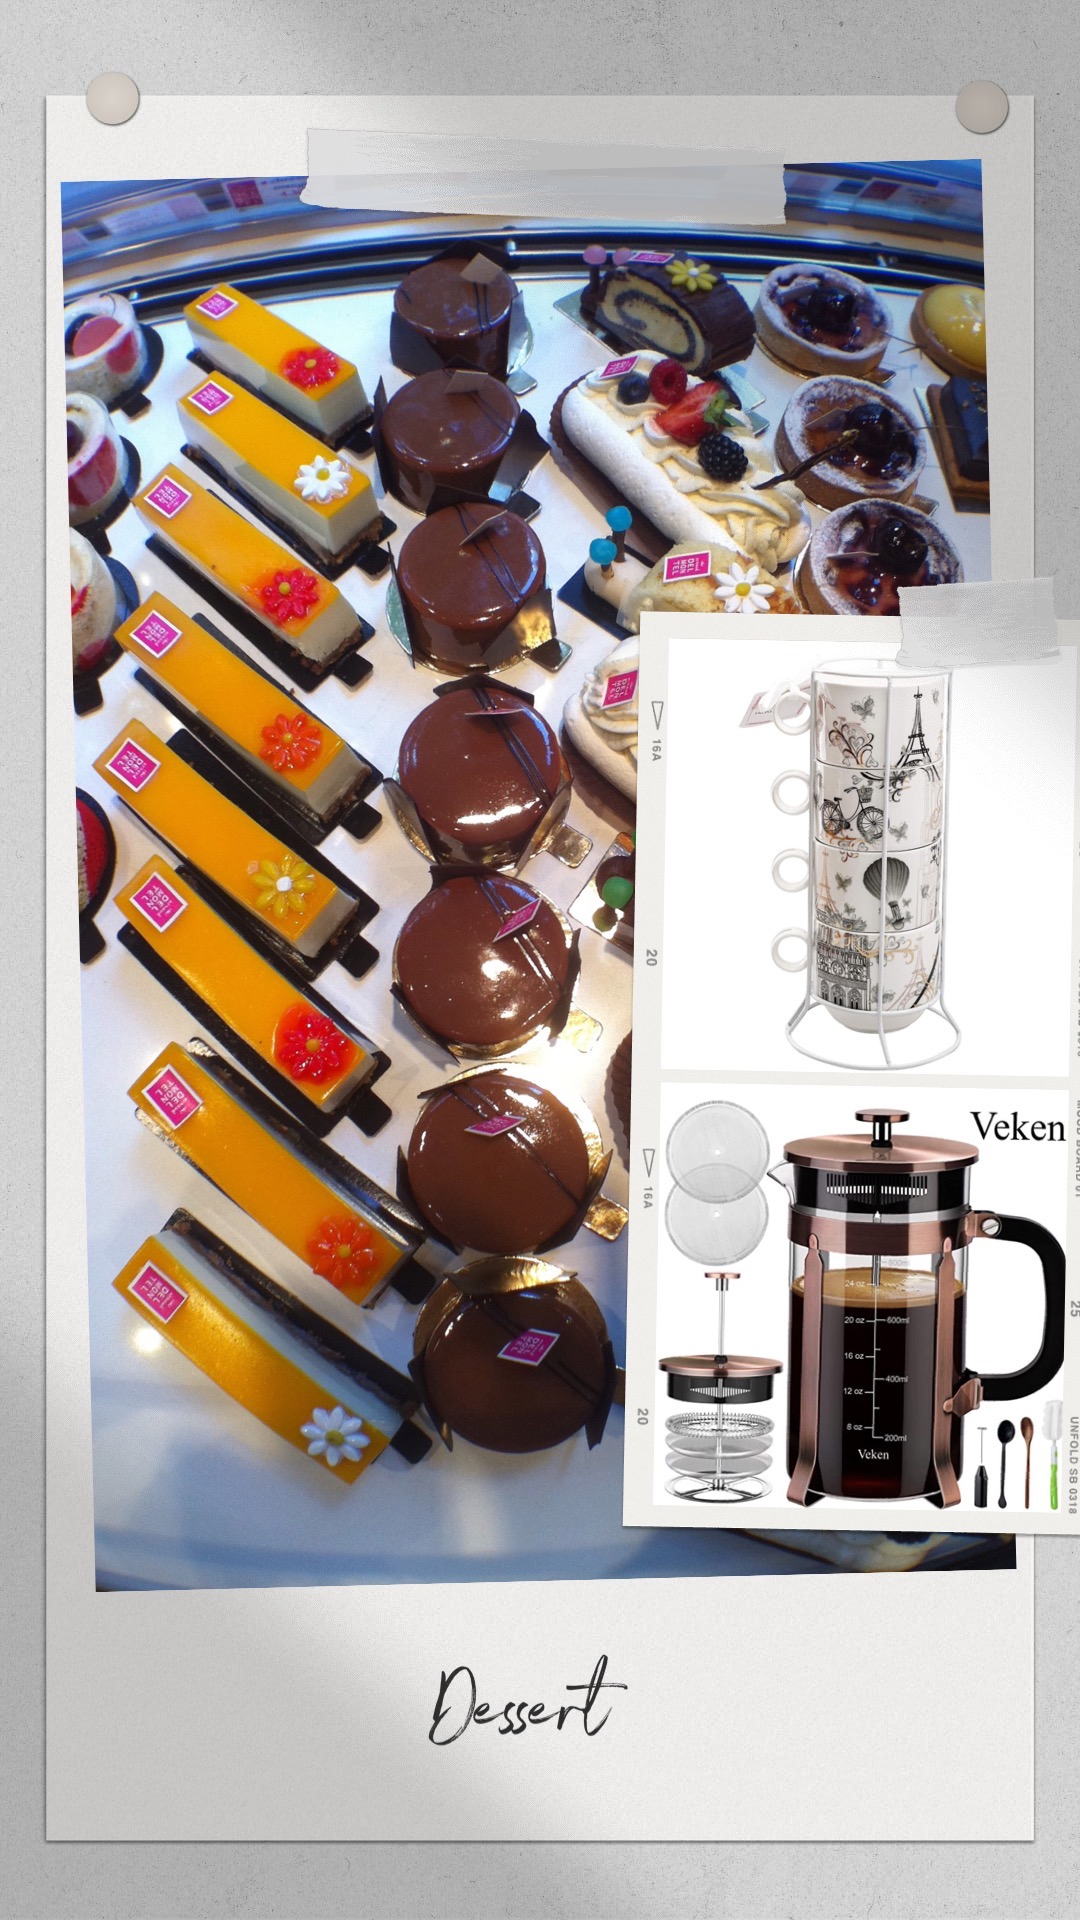 French pastries, coffee cups, French press